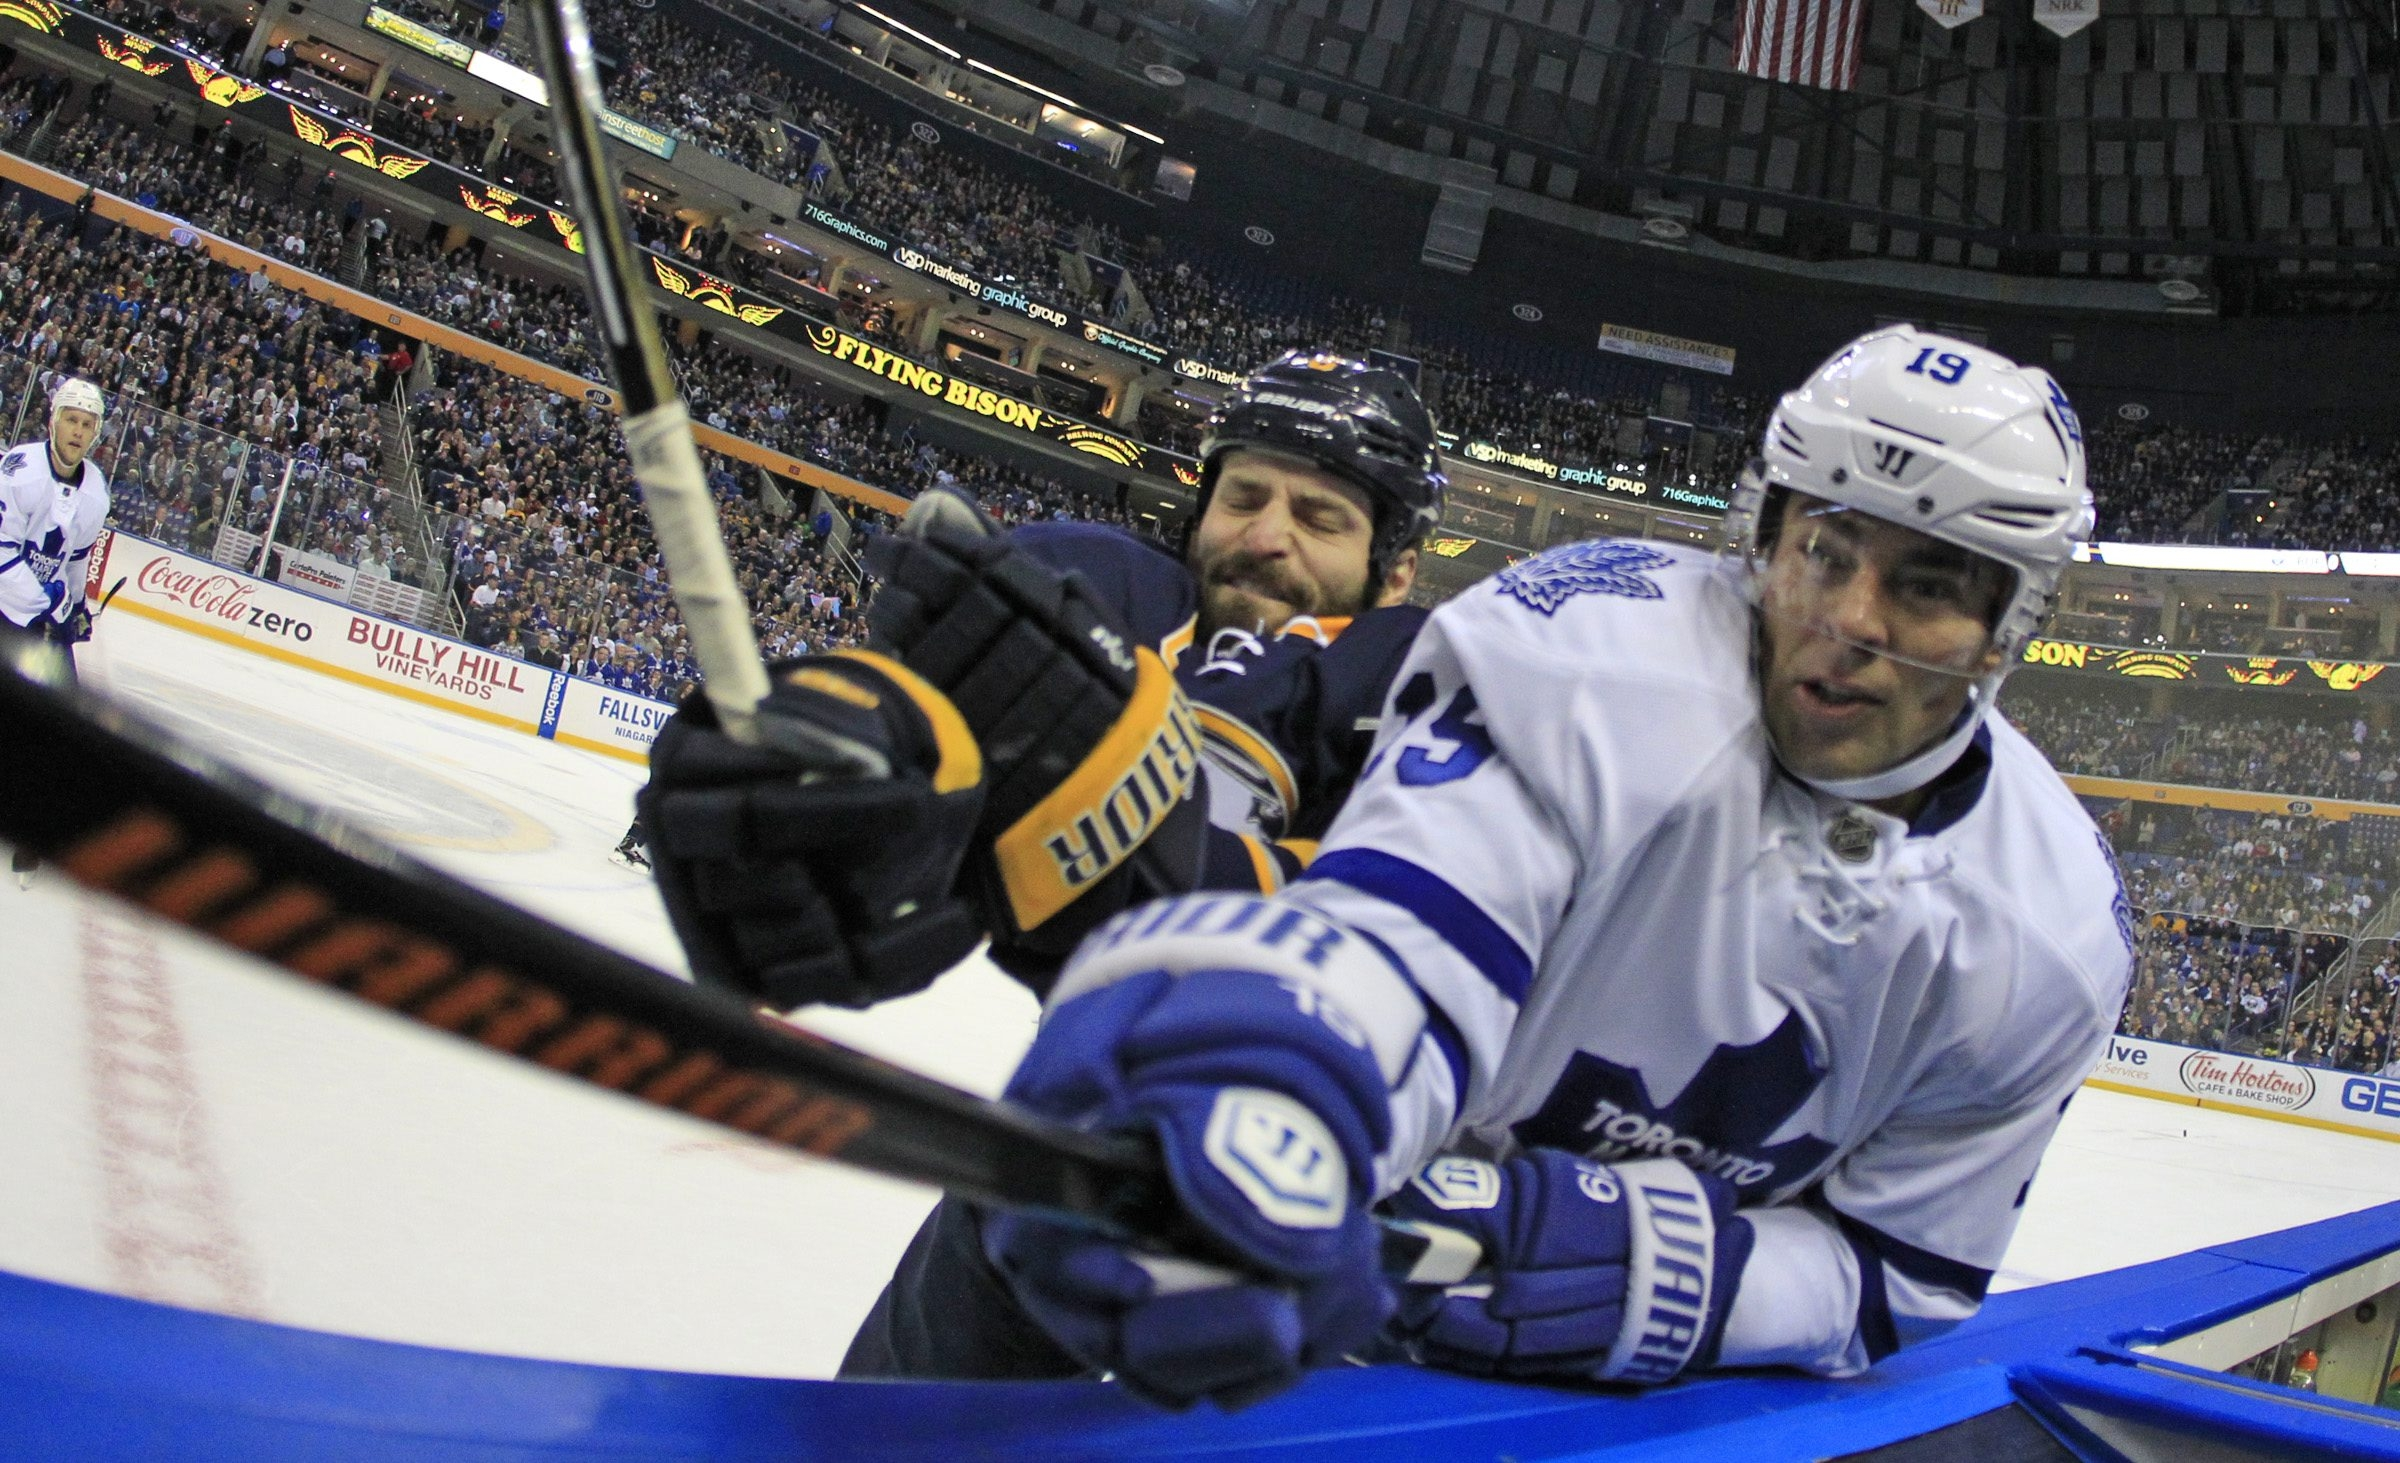 Sabres defenseman Mike Weber checks Joffrey Lupul of the Maple Leafs into the boards during the first period Wednesday.